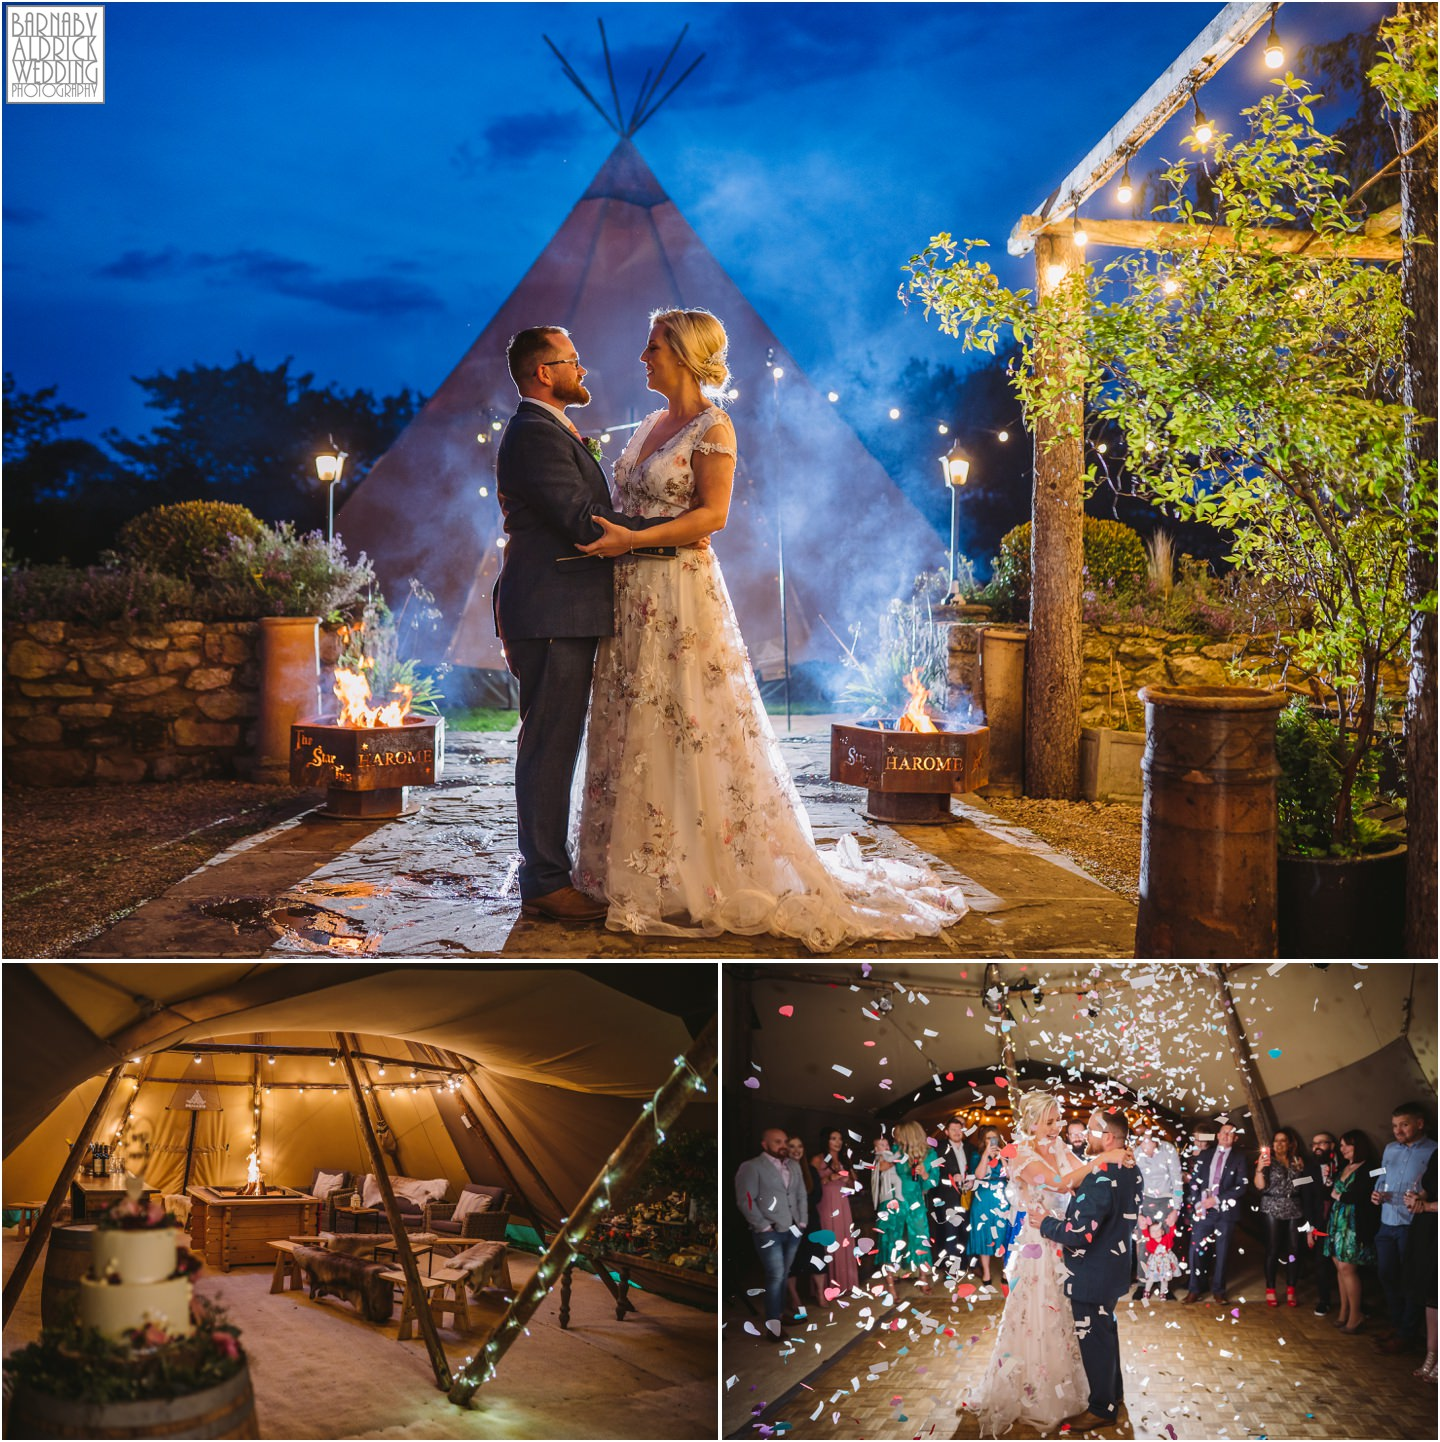 Star Inn Harome papakata reception tipi Yorkshire